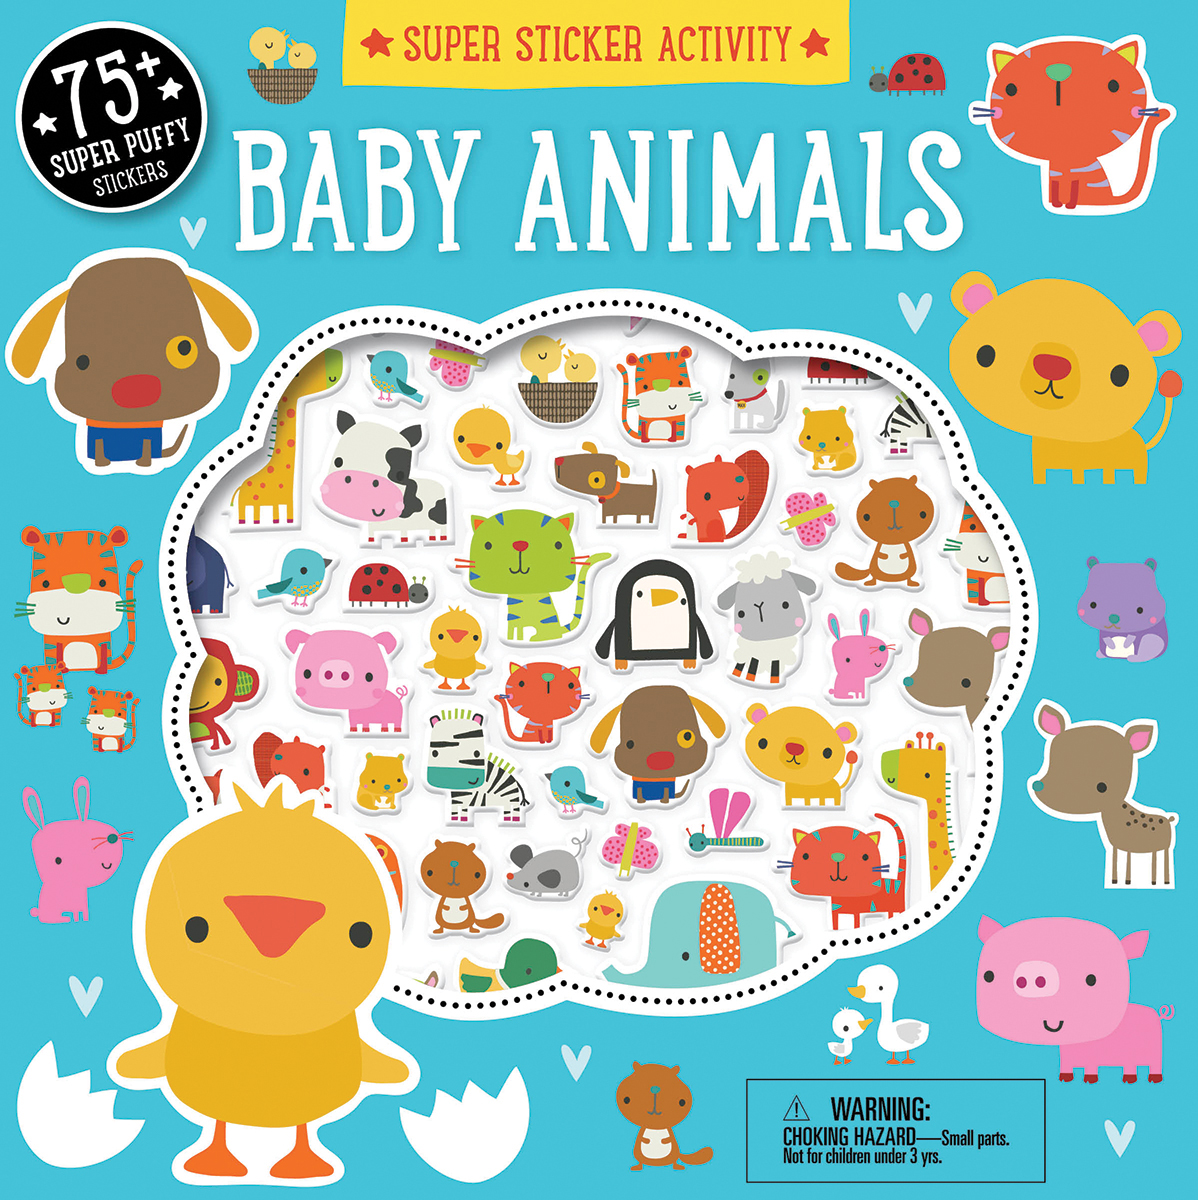 Sticker activity pages 3 animal town 1.00.16